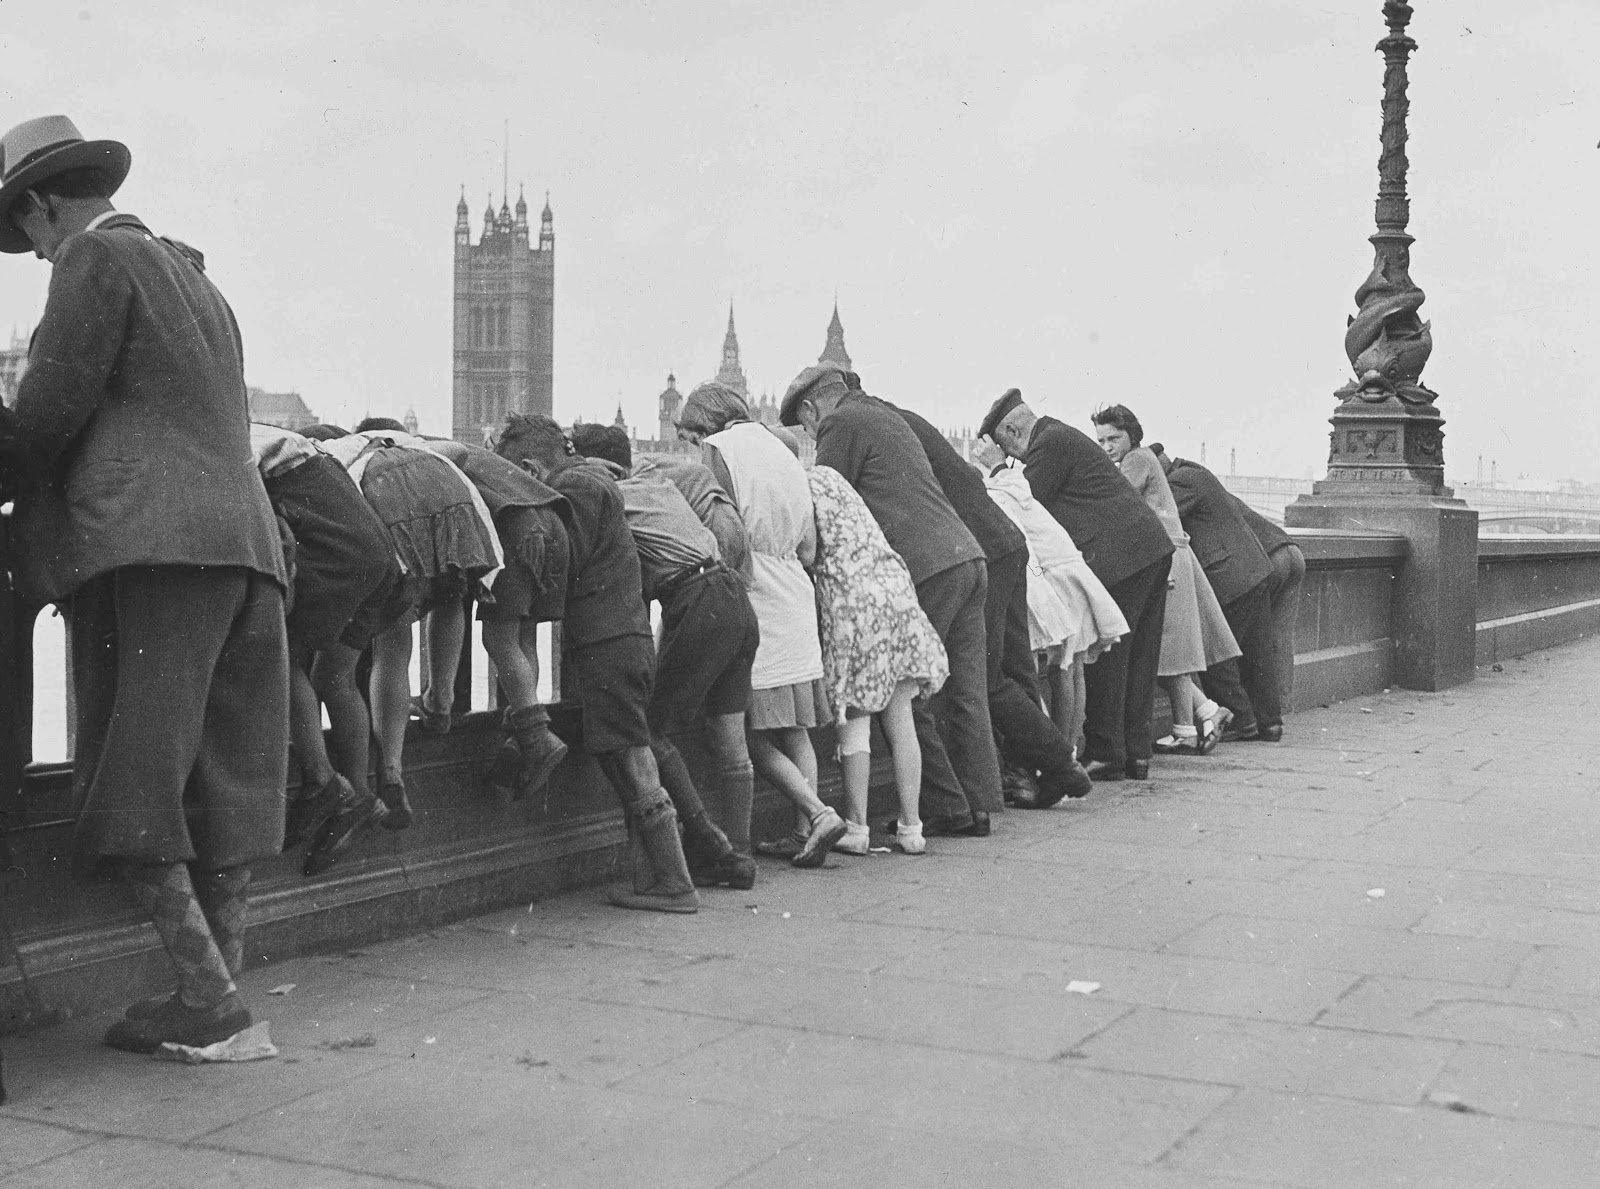 people looking at the Thames embankment